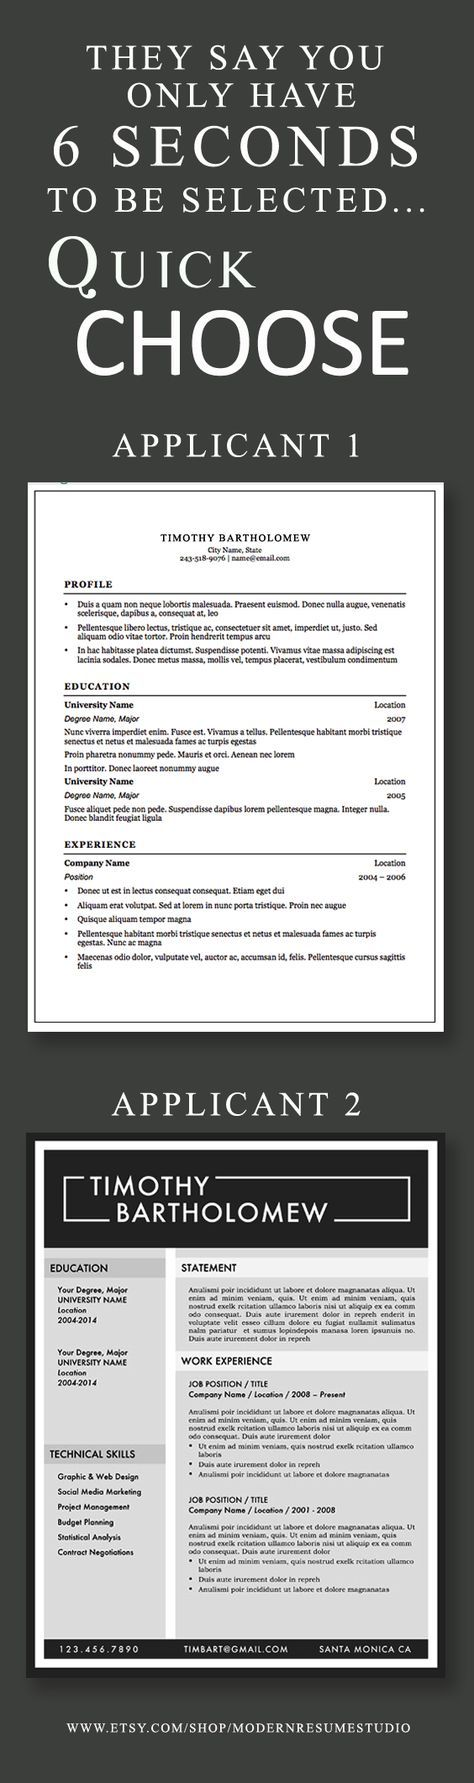 Modern Resume Format%0A Research tells us that recruiters review resumes in   seconds  Make them  count with a